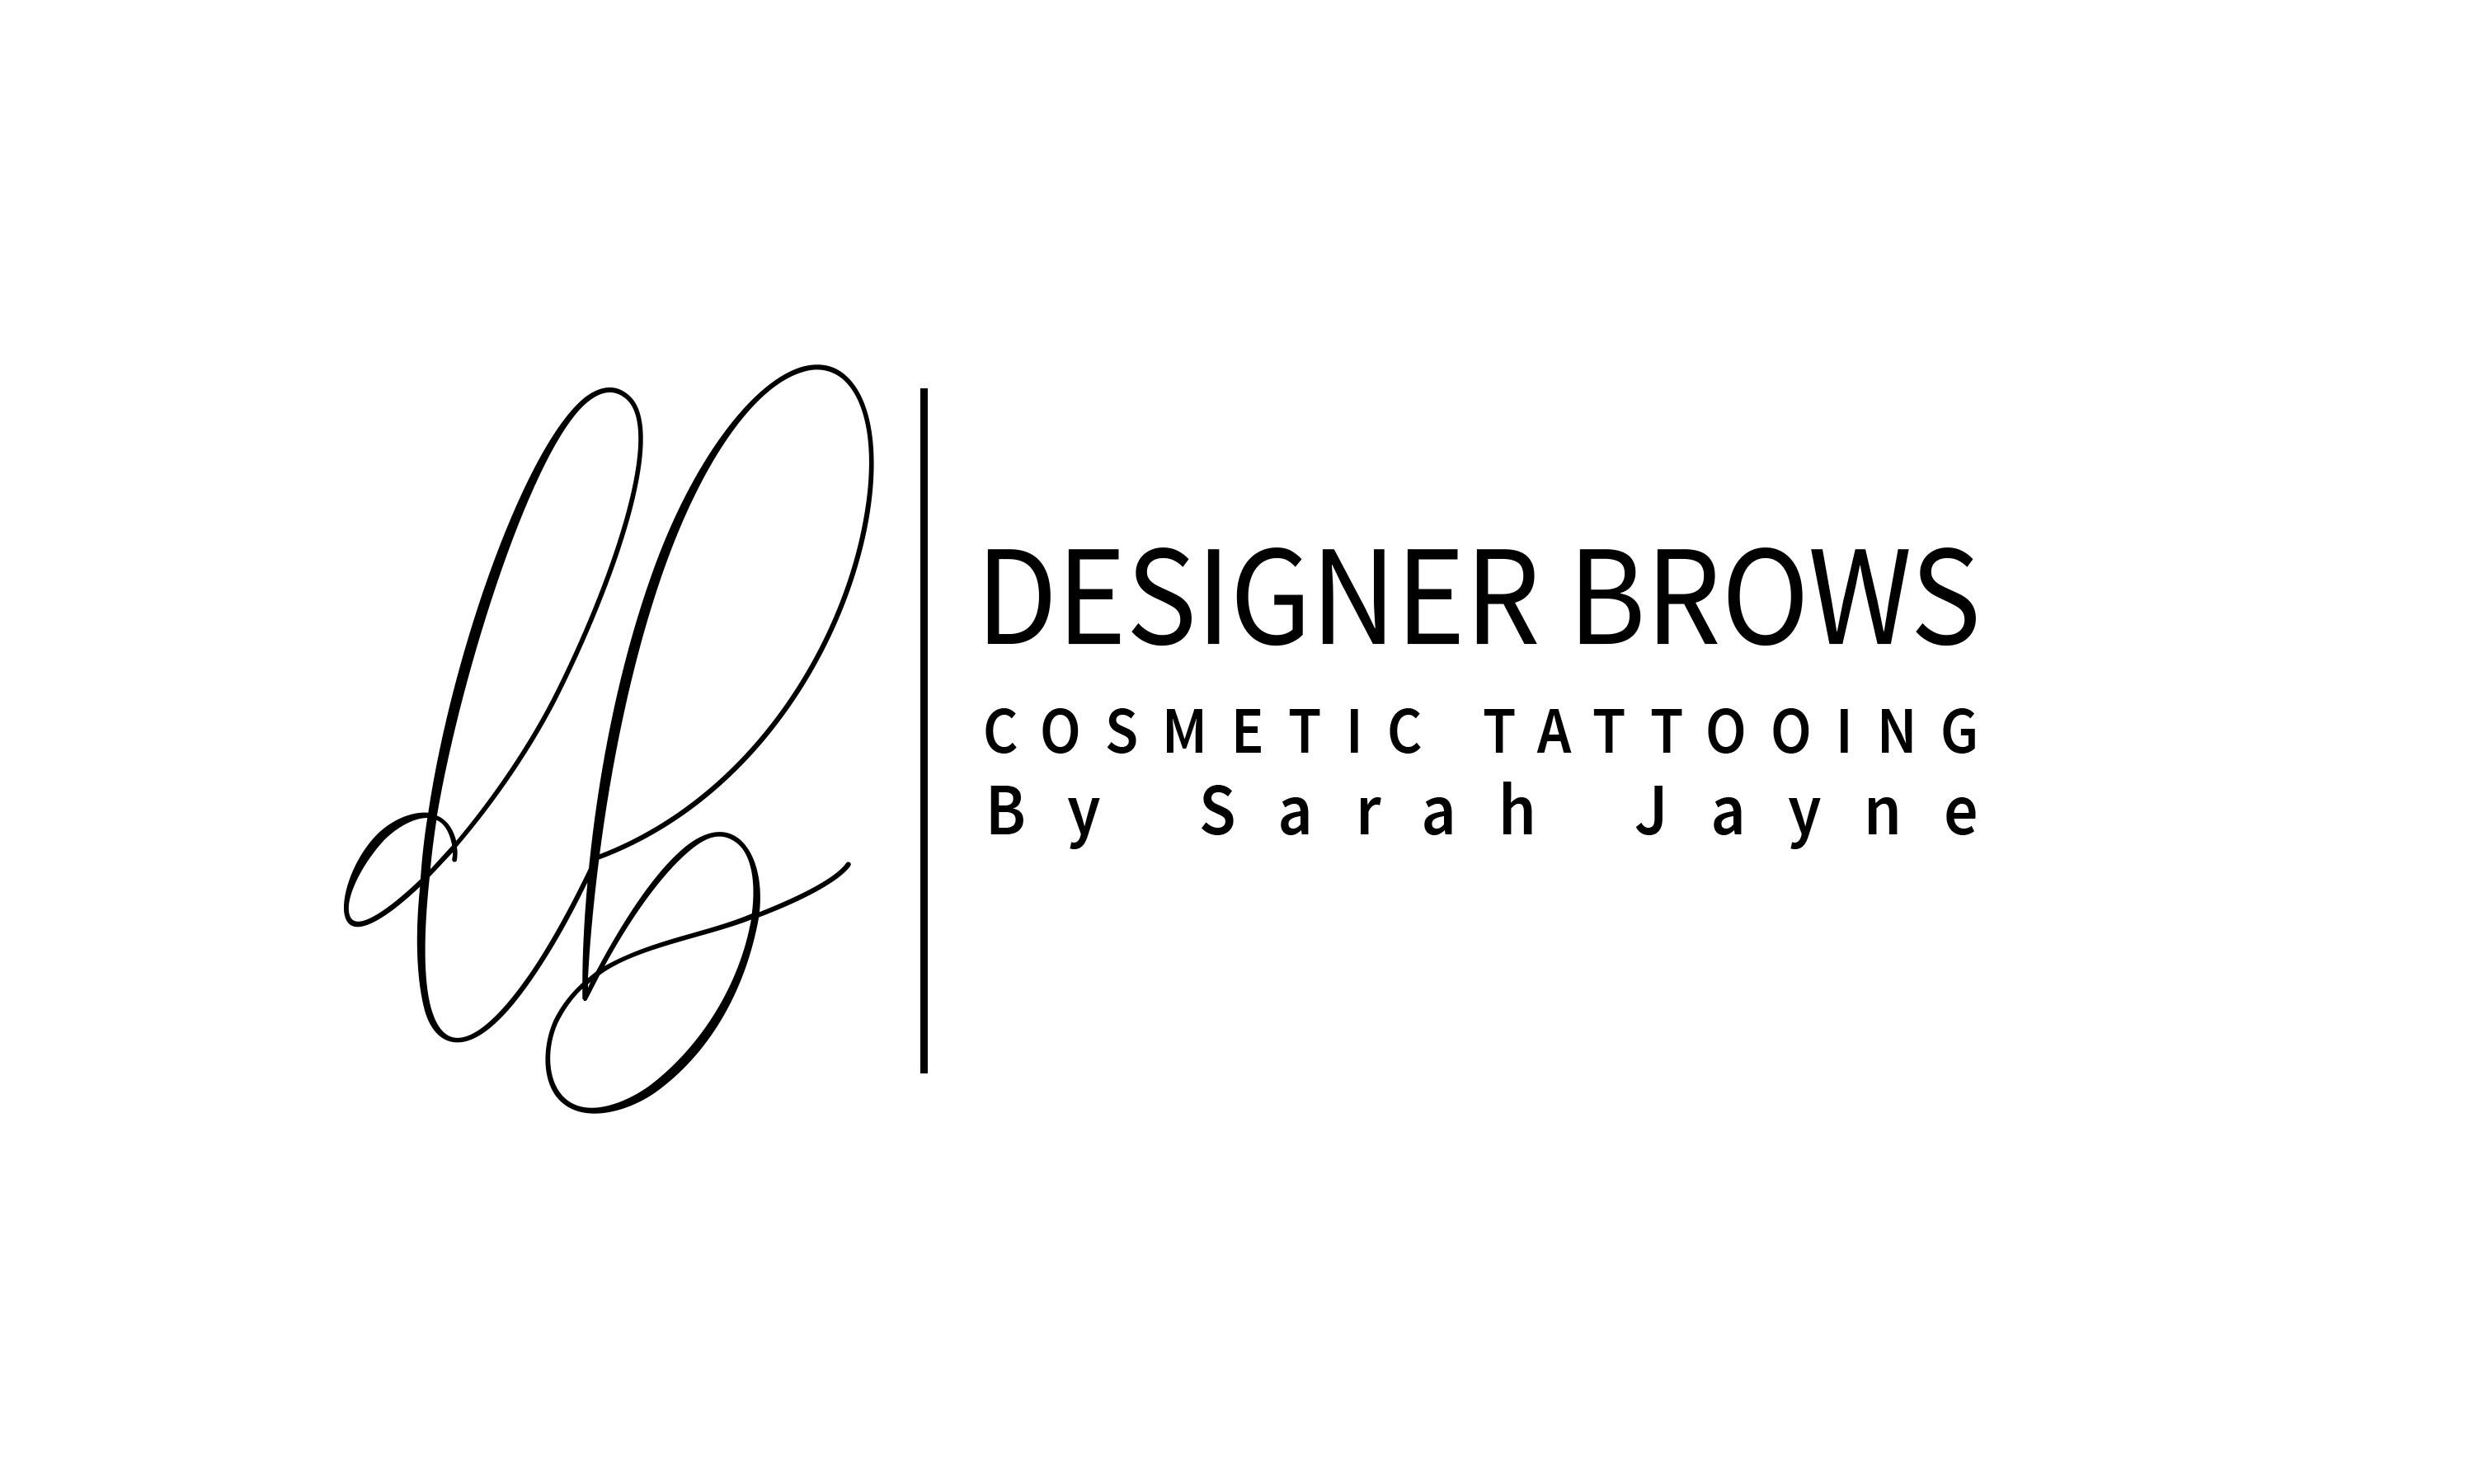 Designer Brows by Sarah Jayne